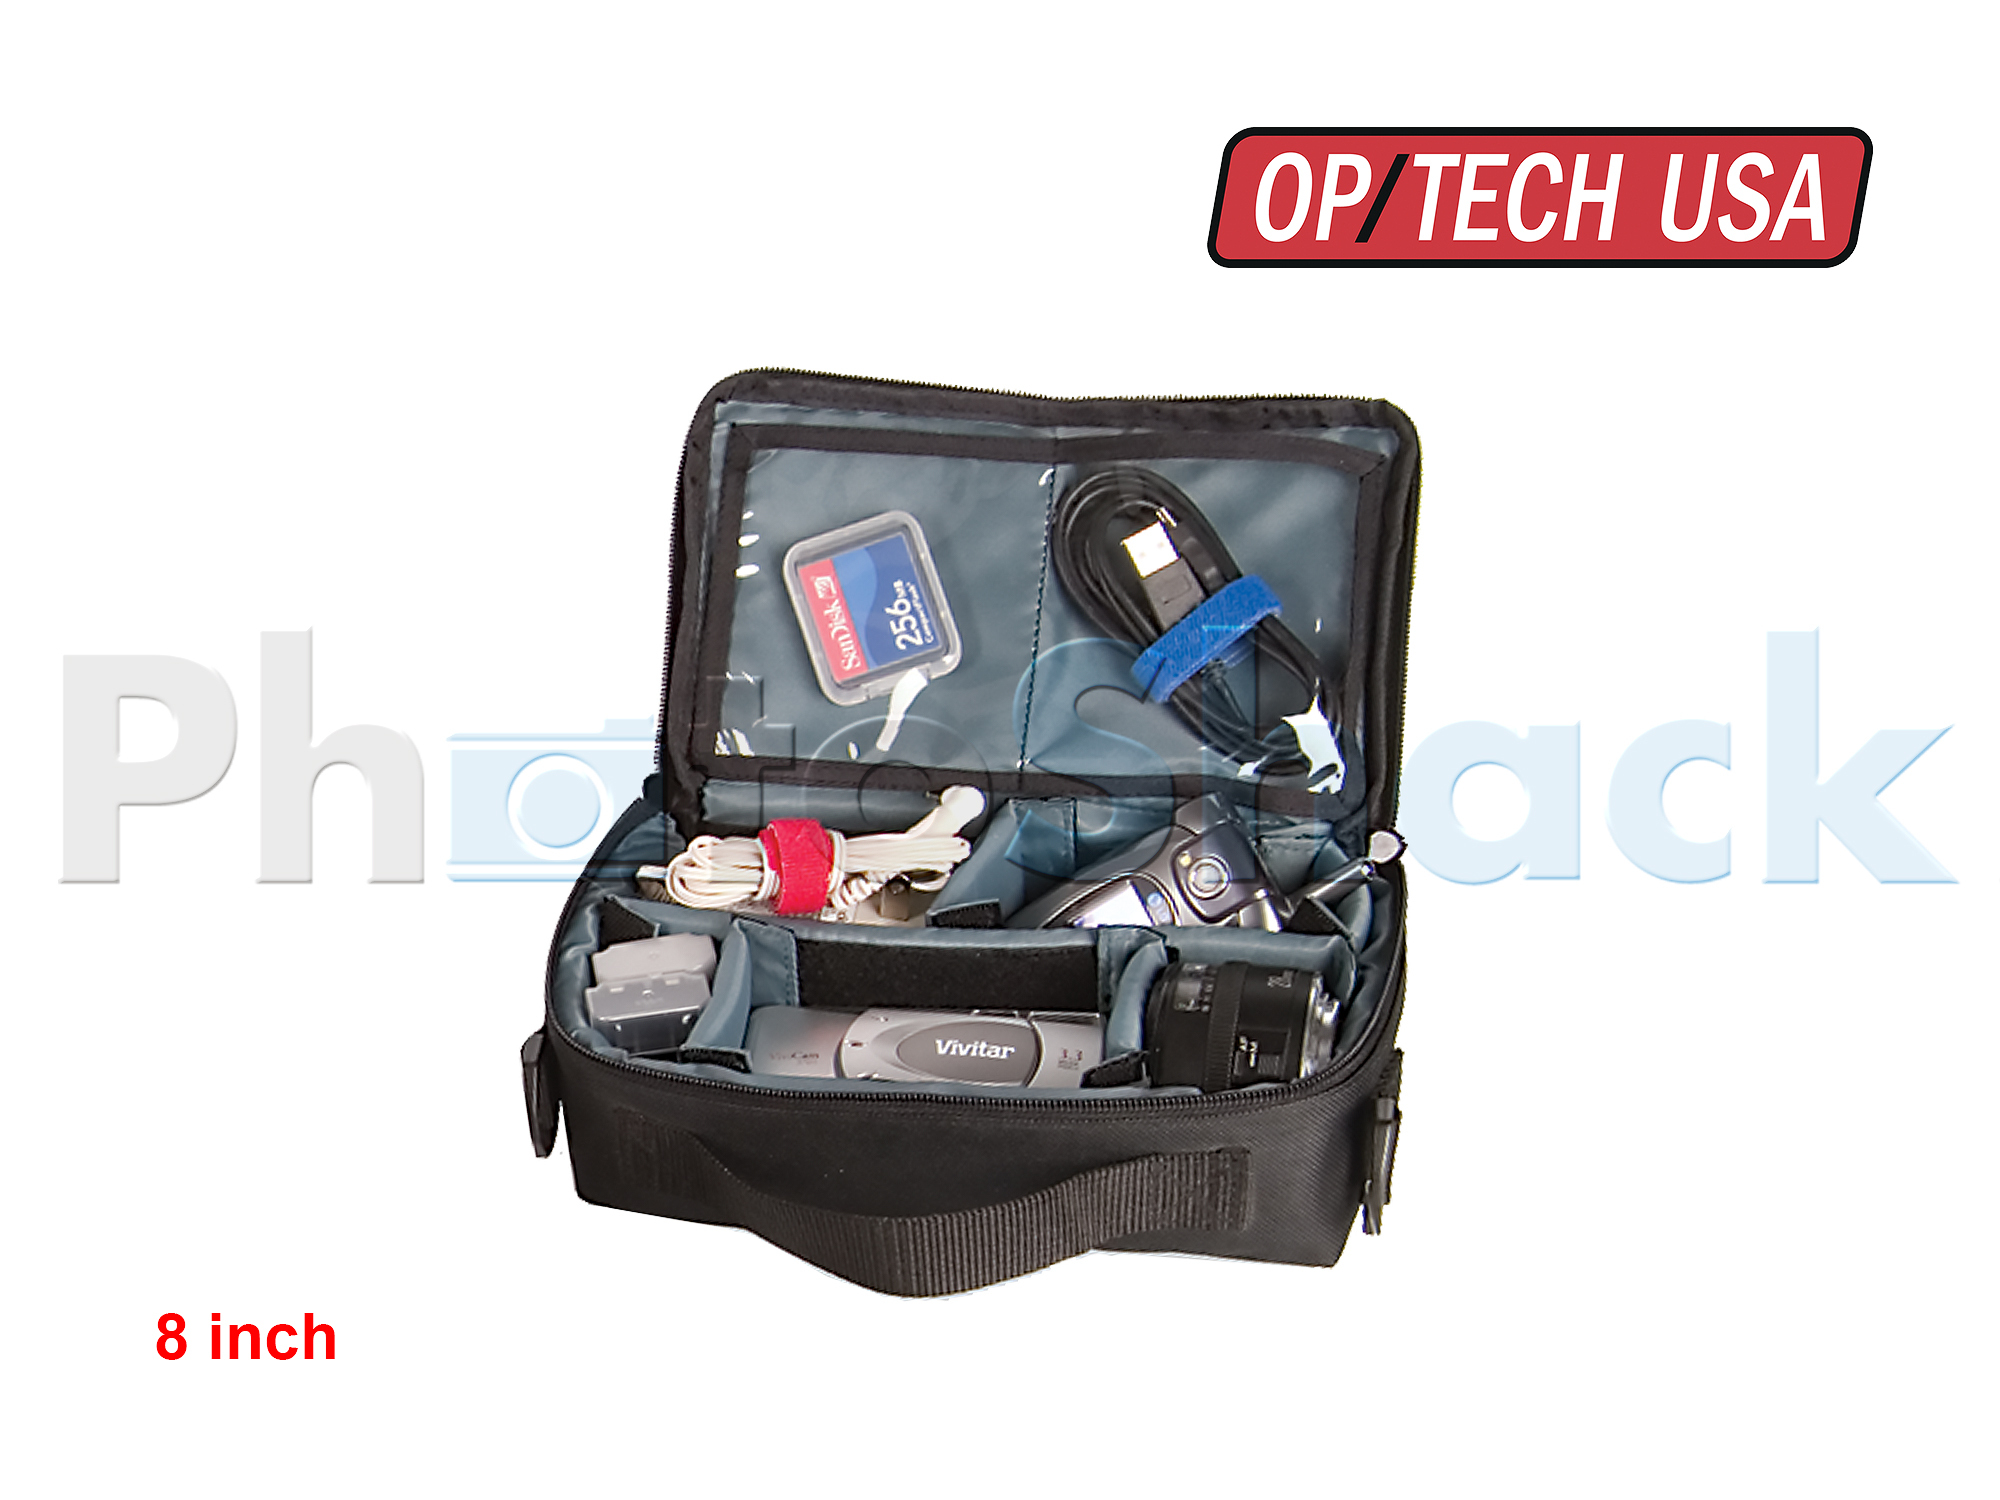 Accessory Pack 8 inch - OP/TECH USA - 4901002